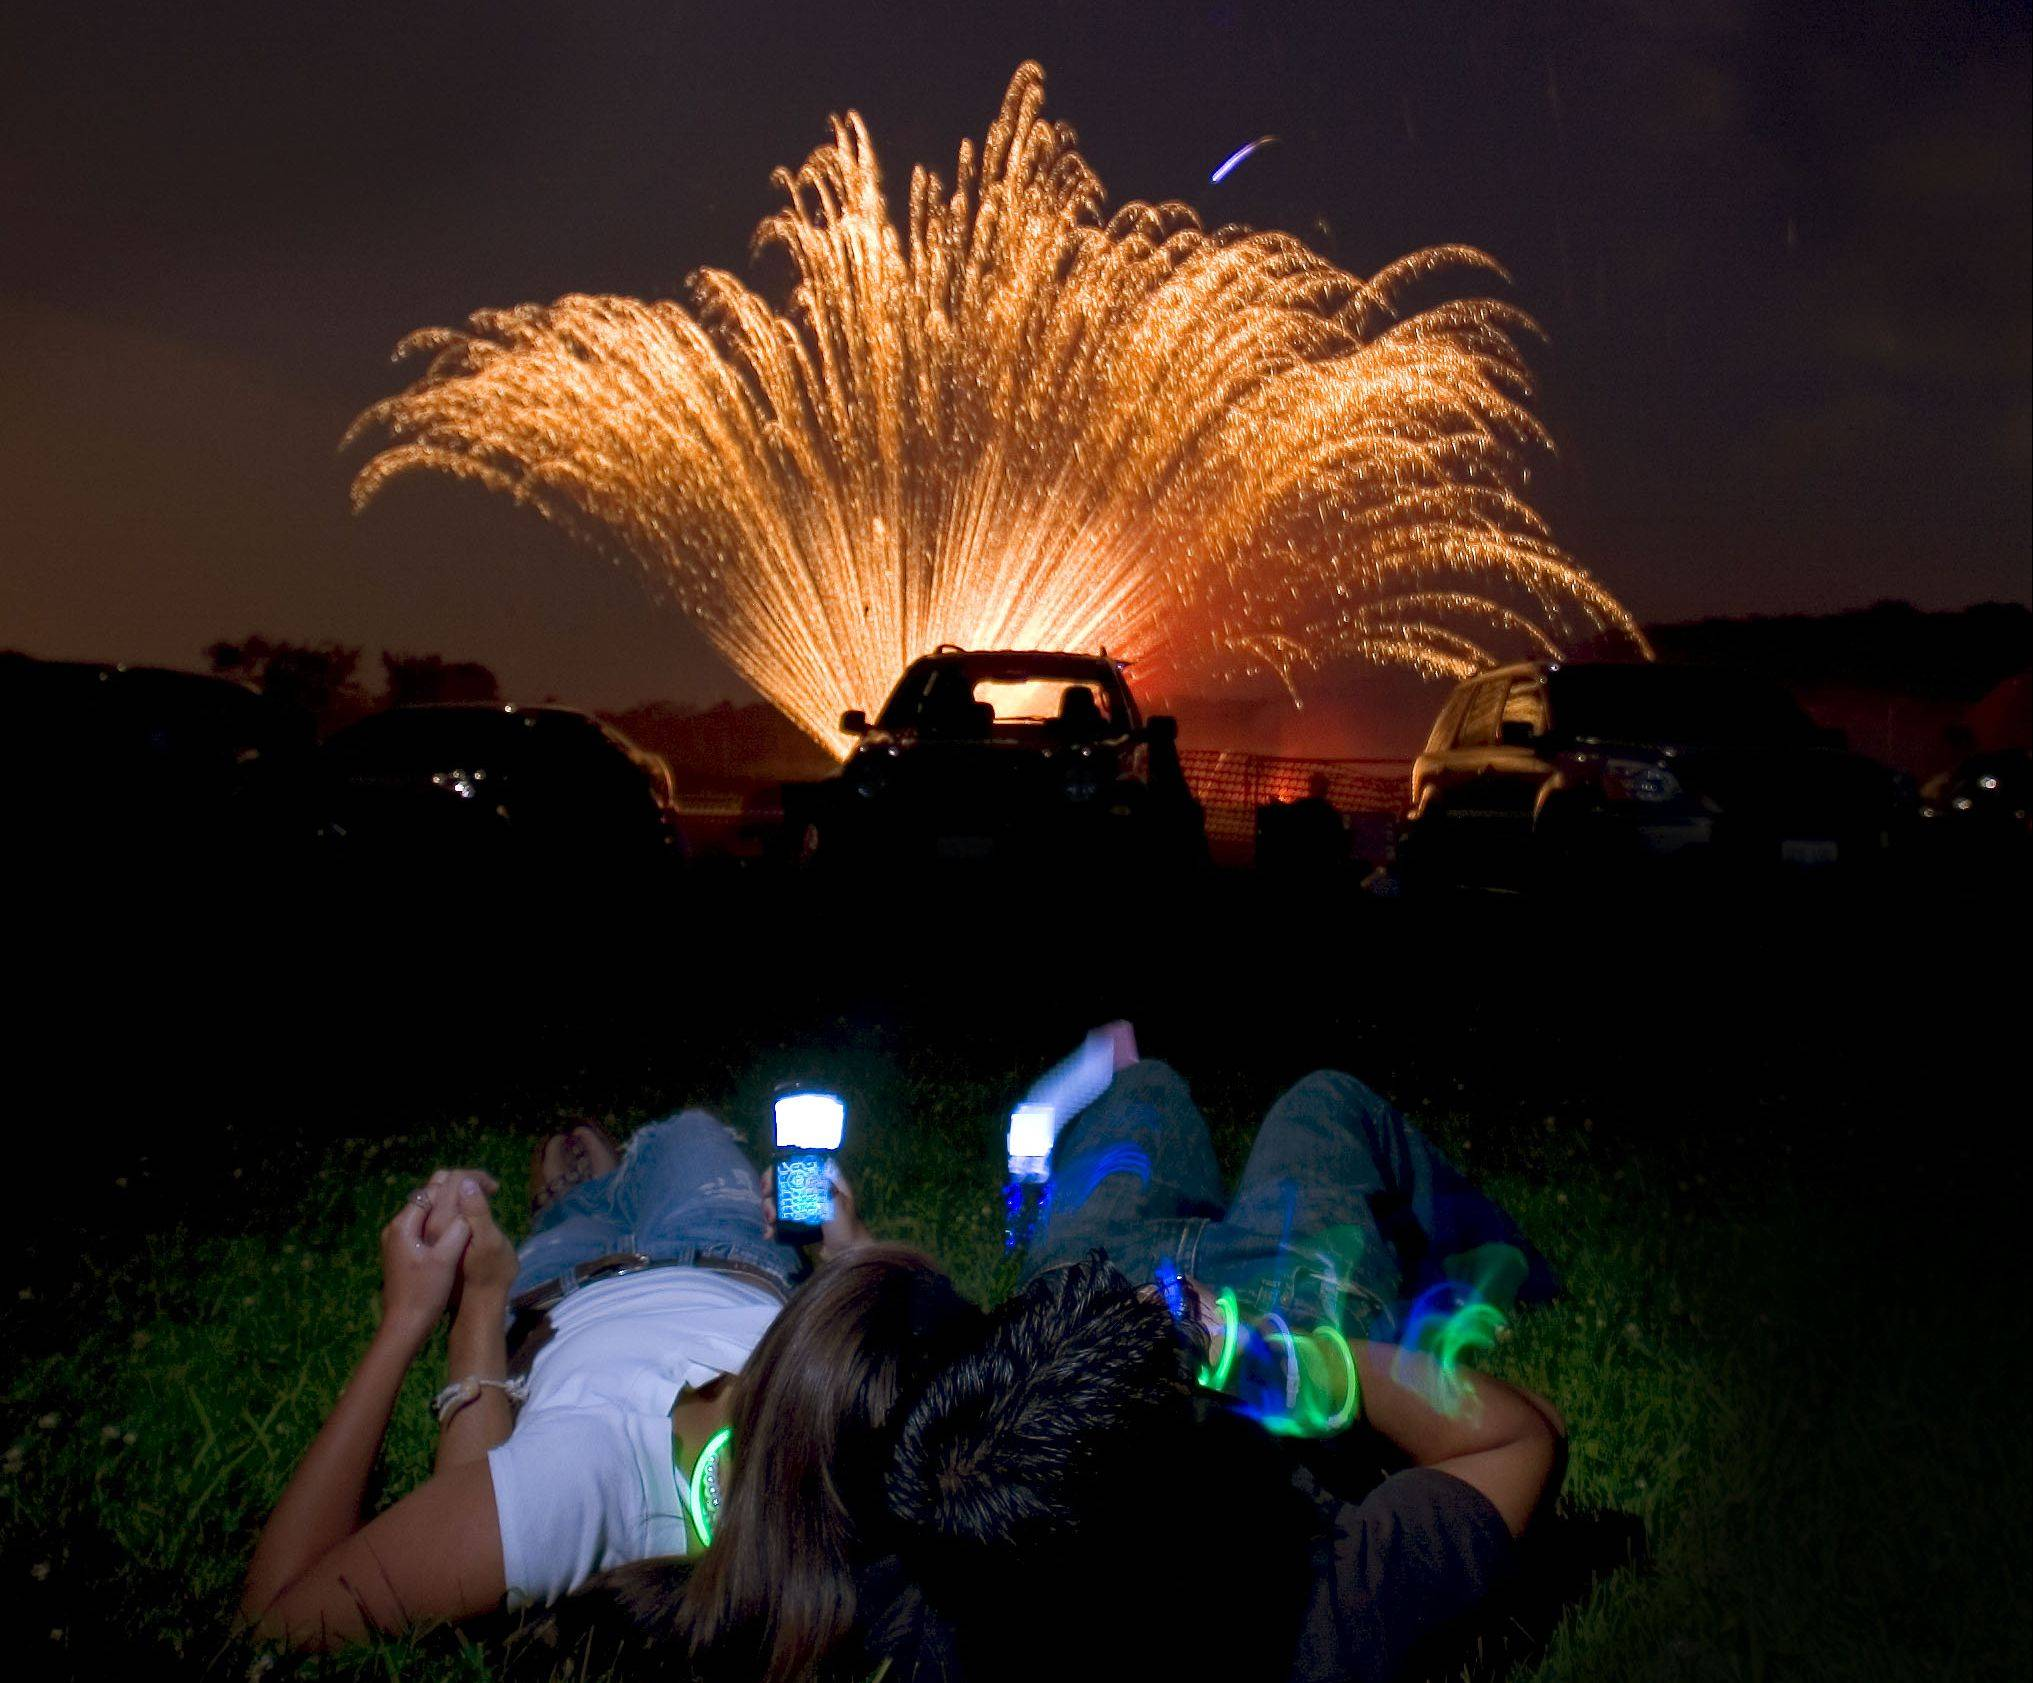 July 4 fireworks shows are planned across the suburbs, even if a bit scaled down.